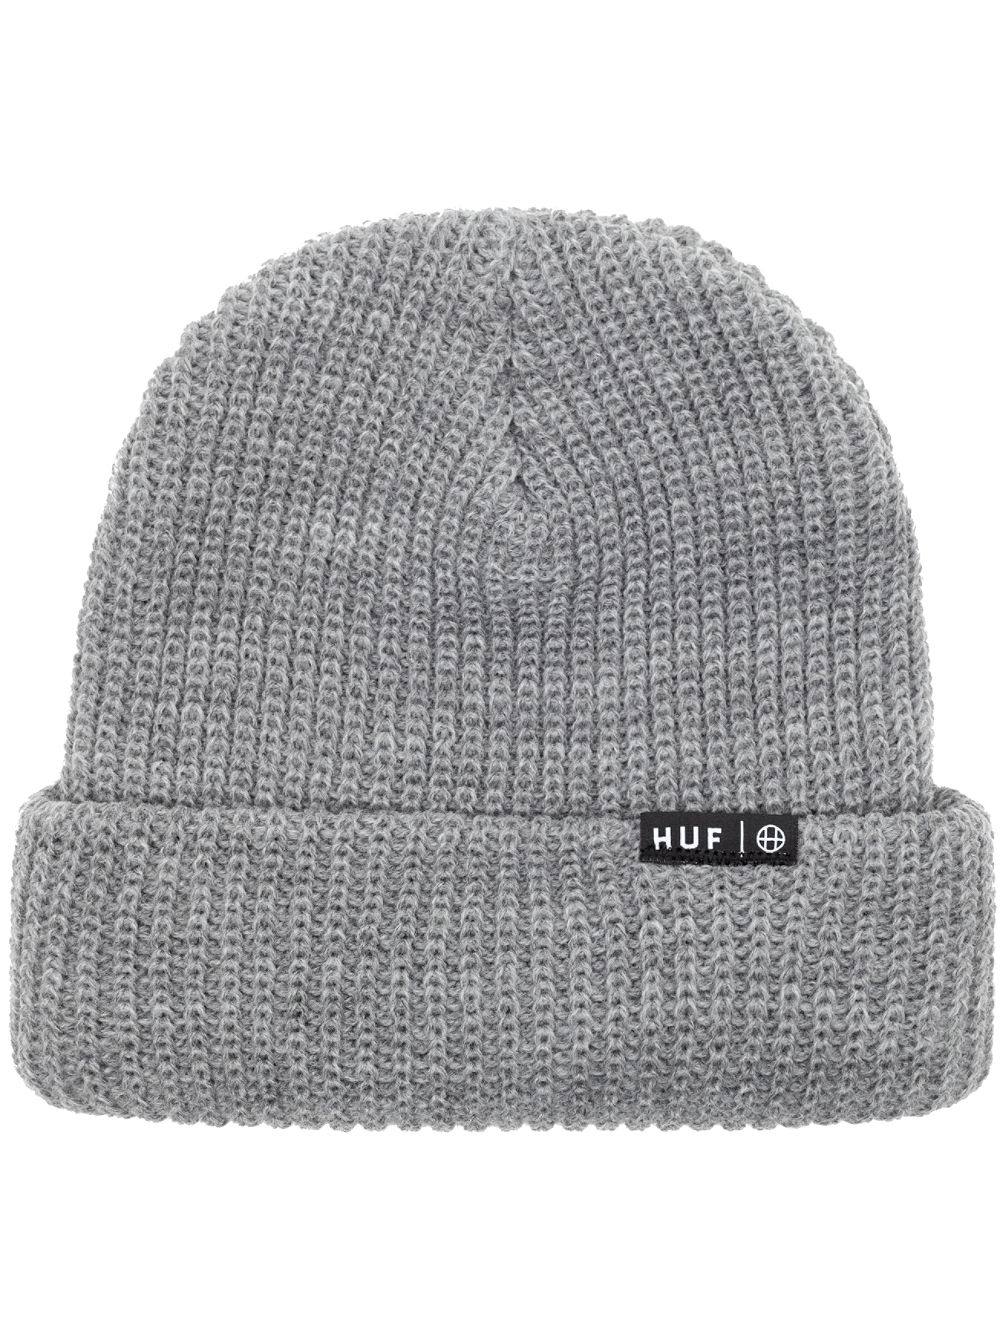 ad5d09ebfe5 Buy HUF Usual Ess Beanie online at Blue Tomato